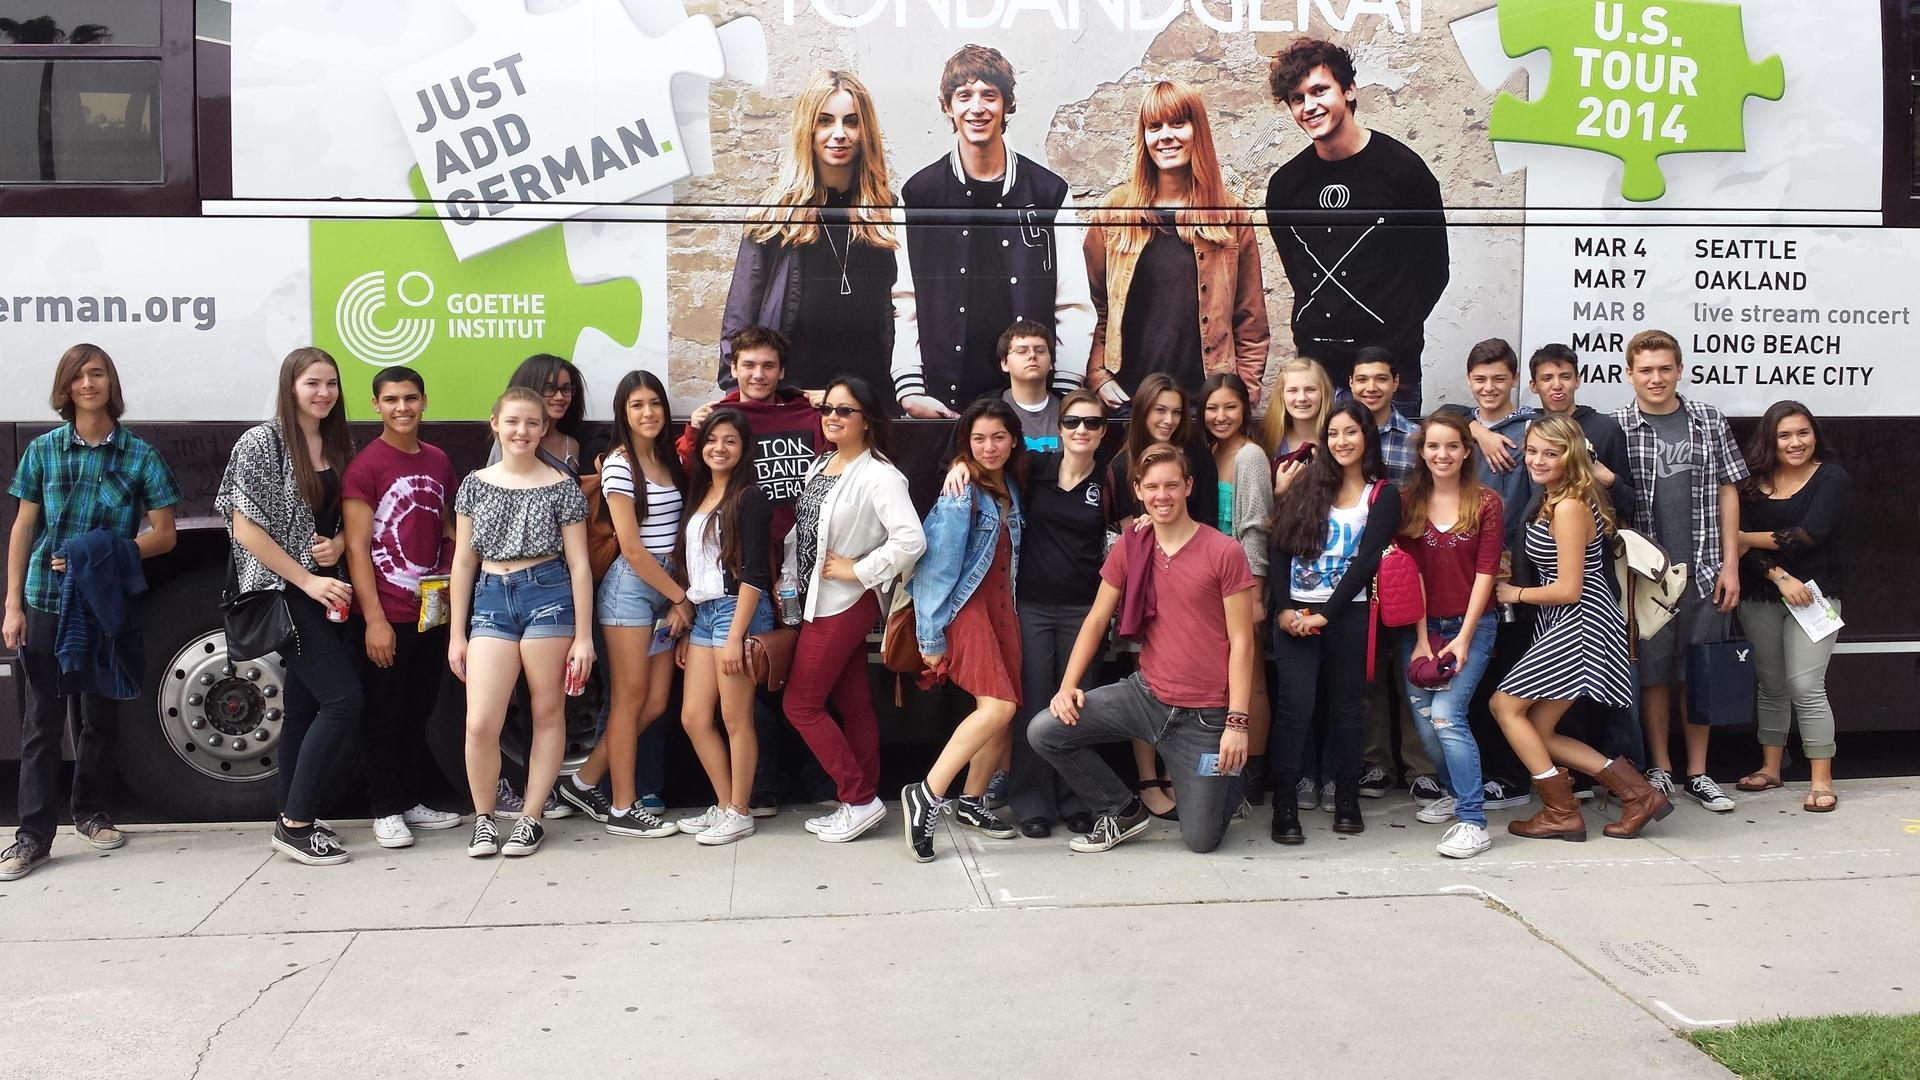 Group photo in front of the band's tour bus